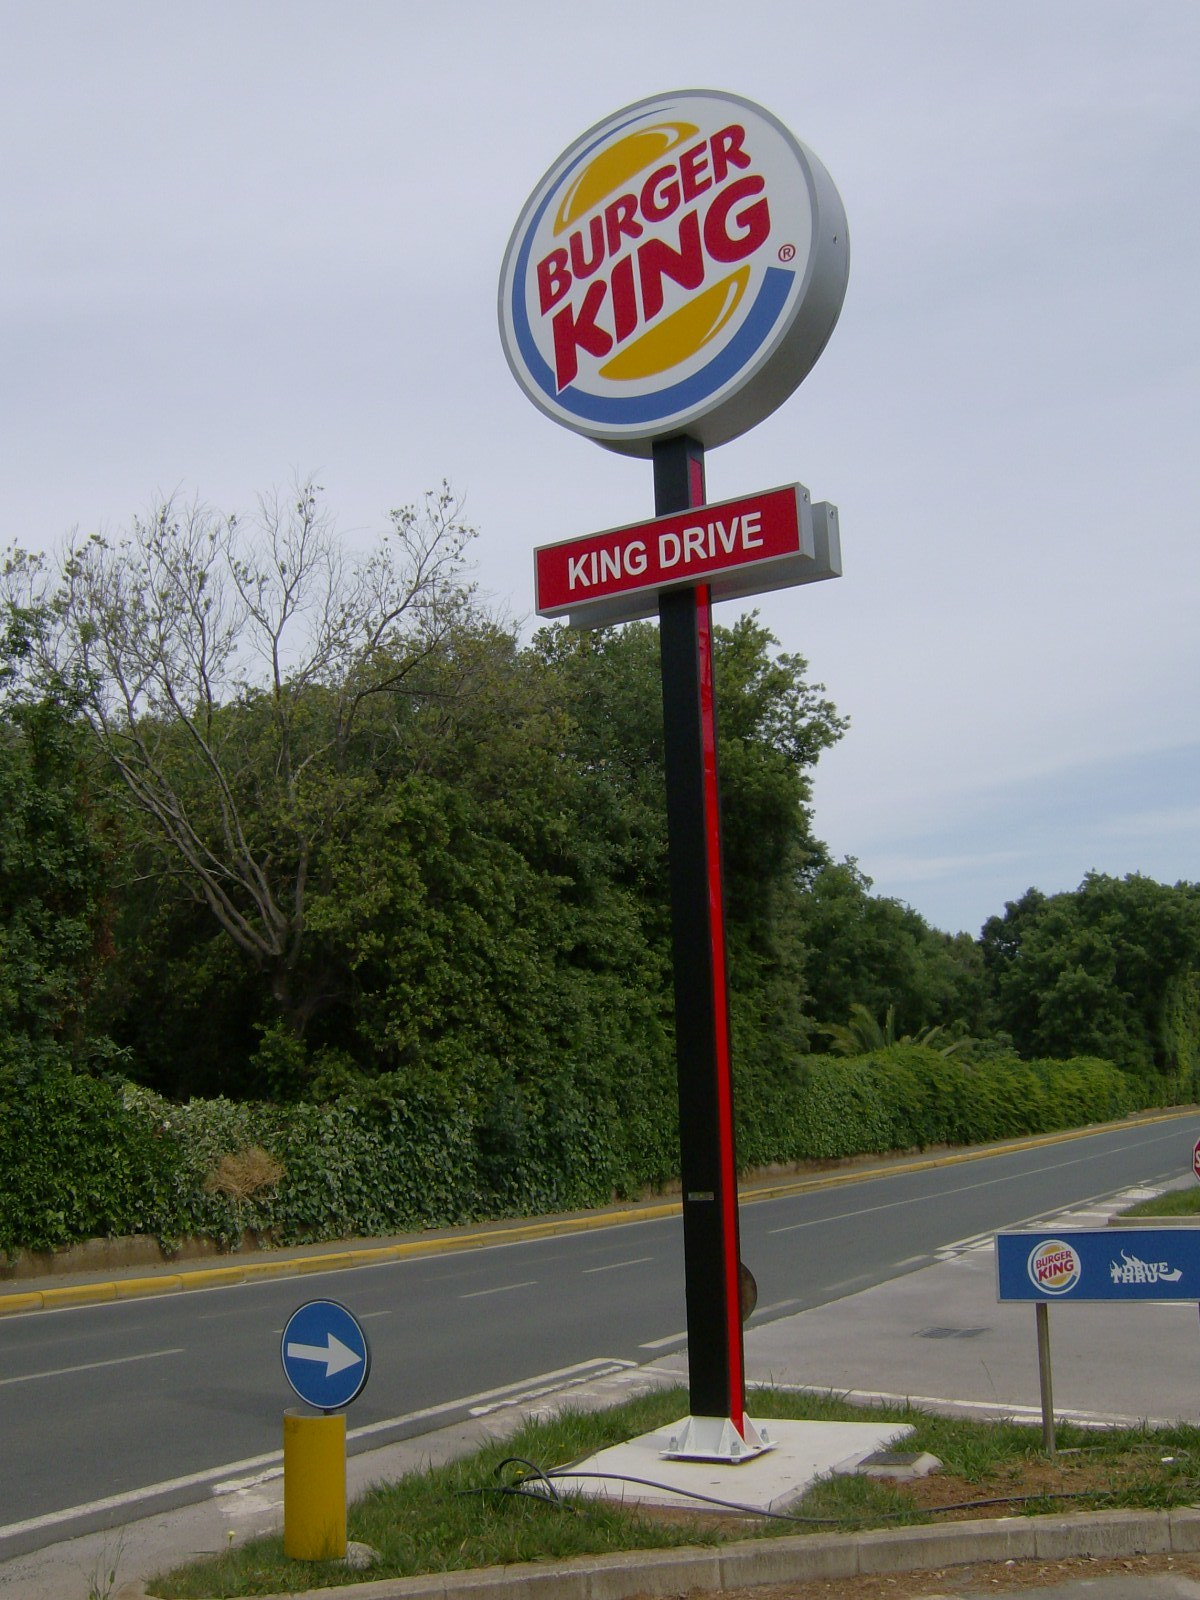 Burger King | Emmebi Sign